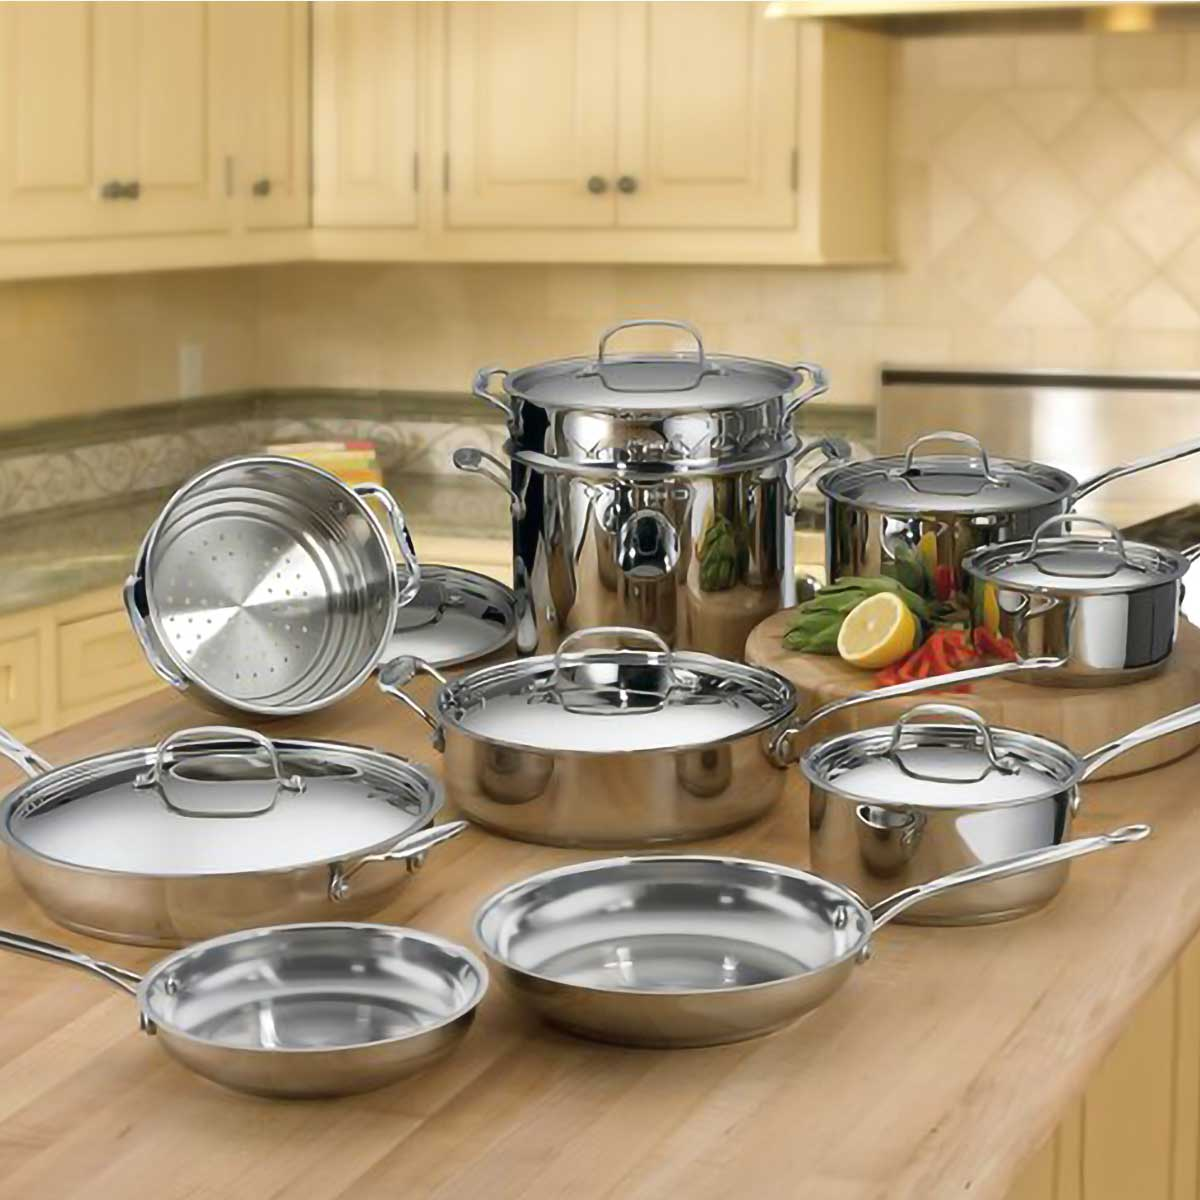 Cuisinart terStainless Steel Cookware Set on Coun